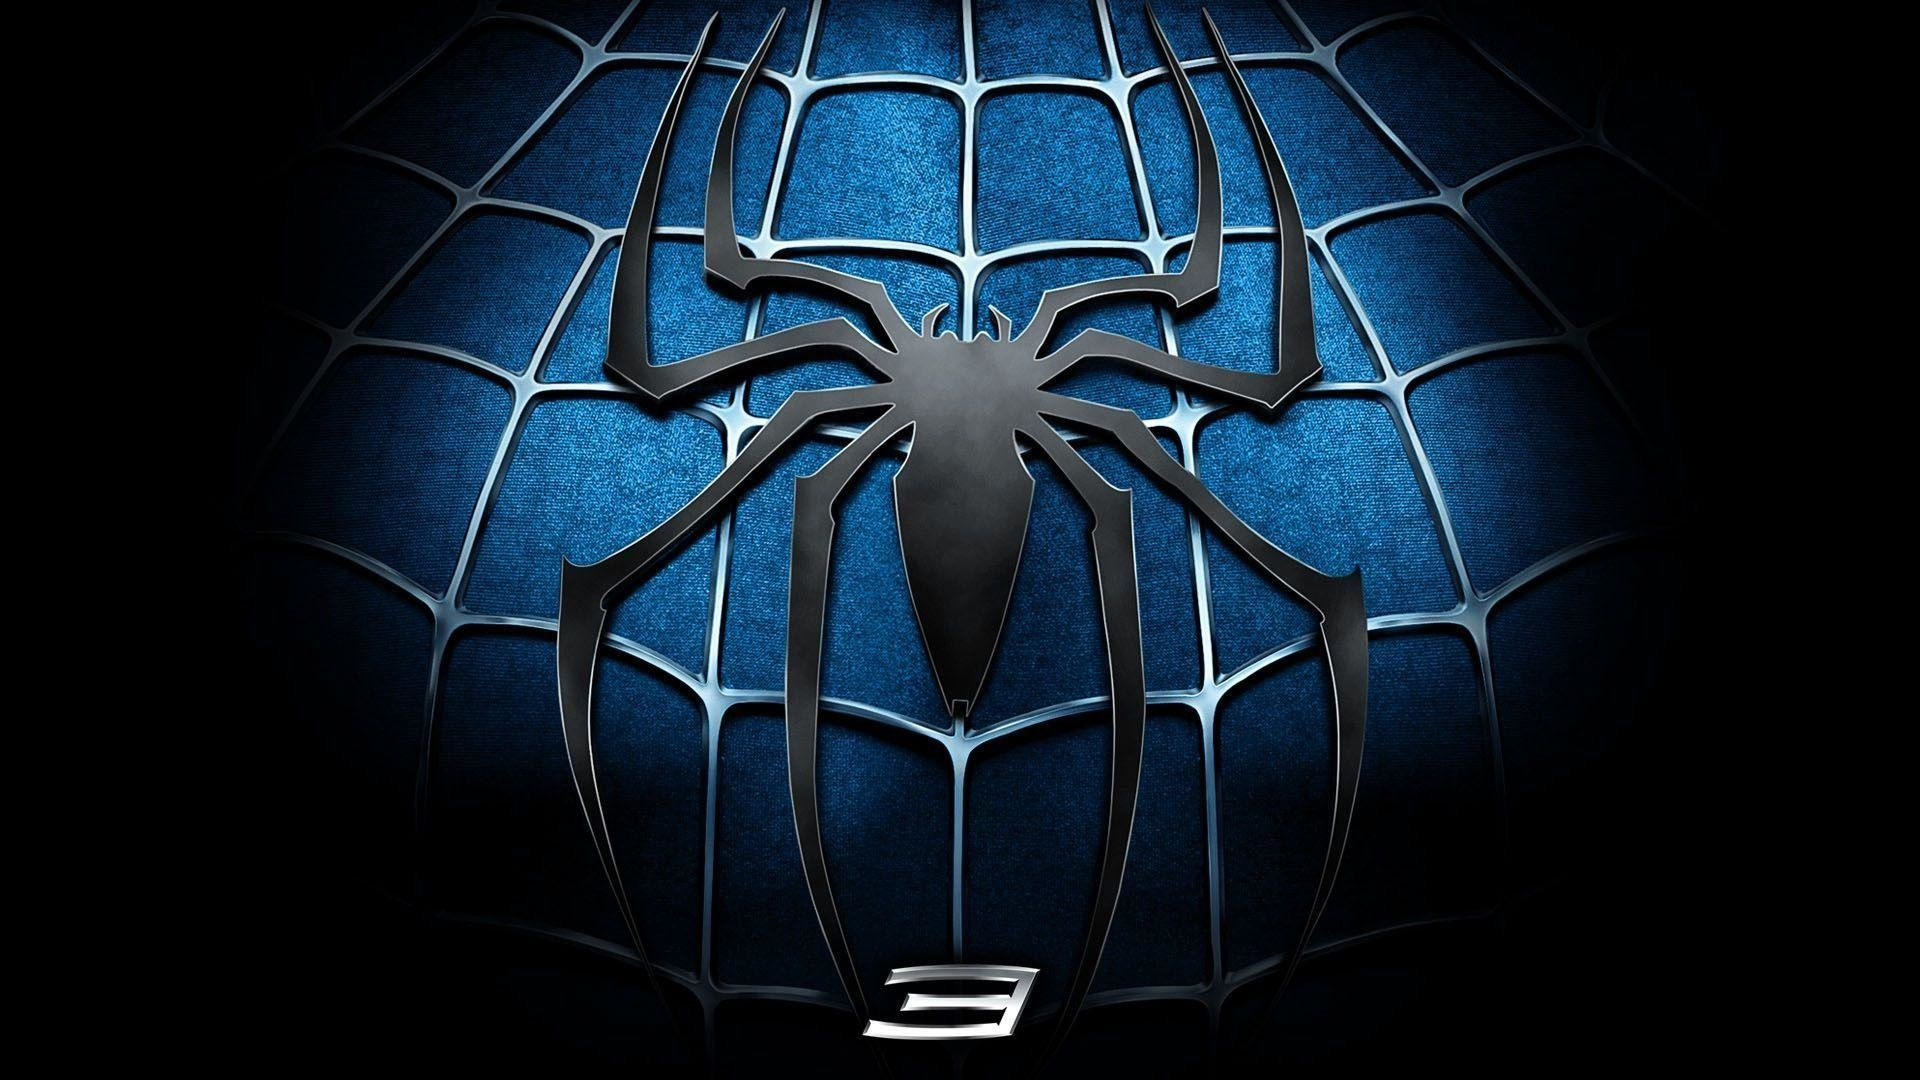 Wallpapers For > Spiderman 3 Wallpaper Hd 1080p